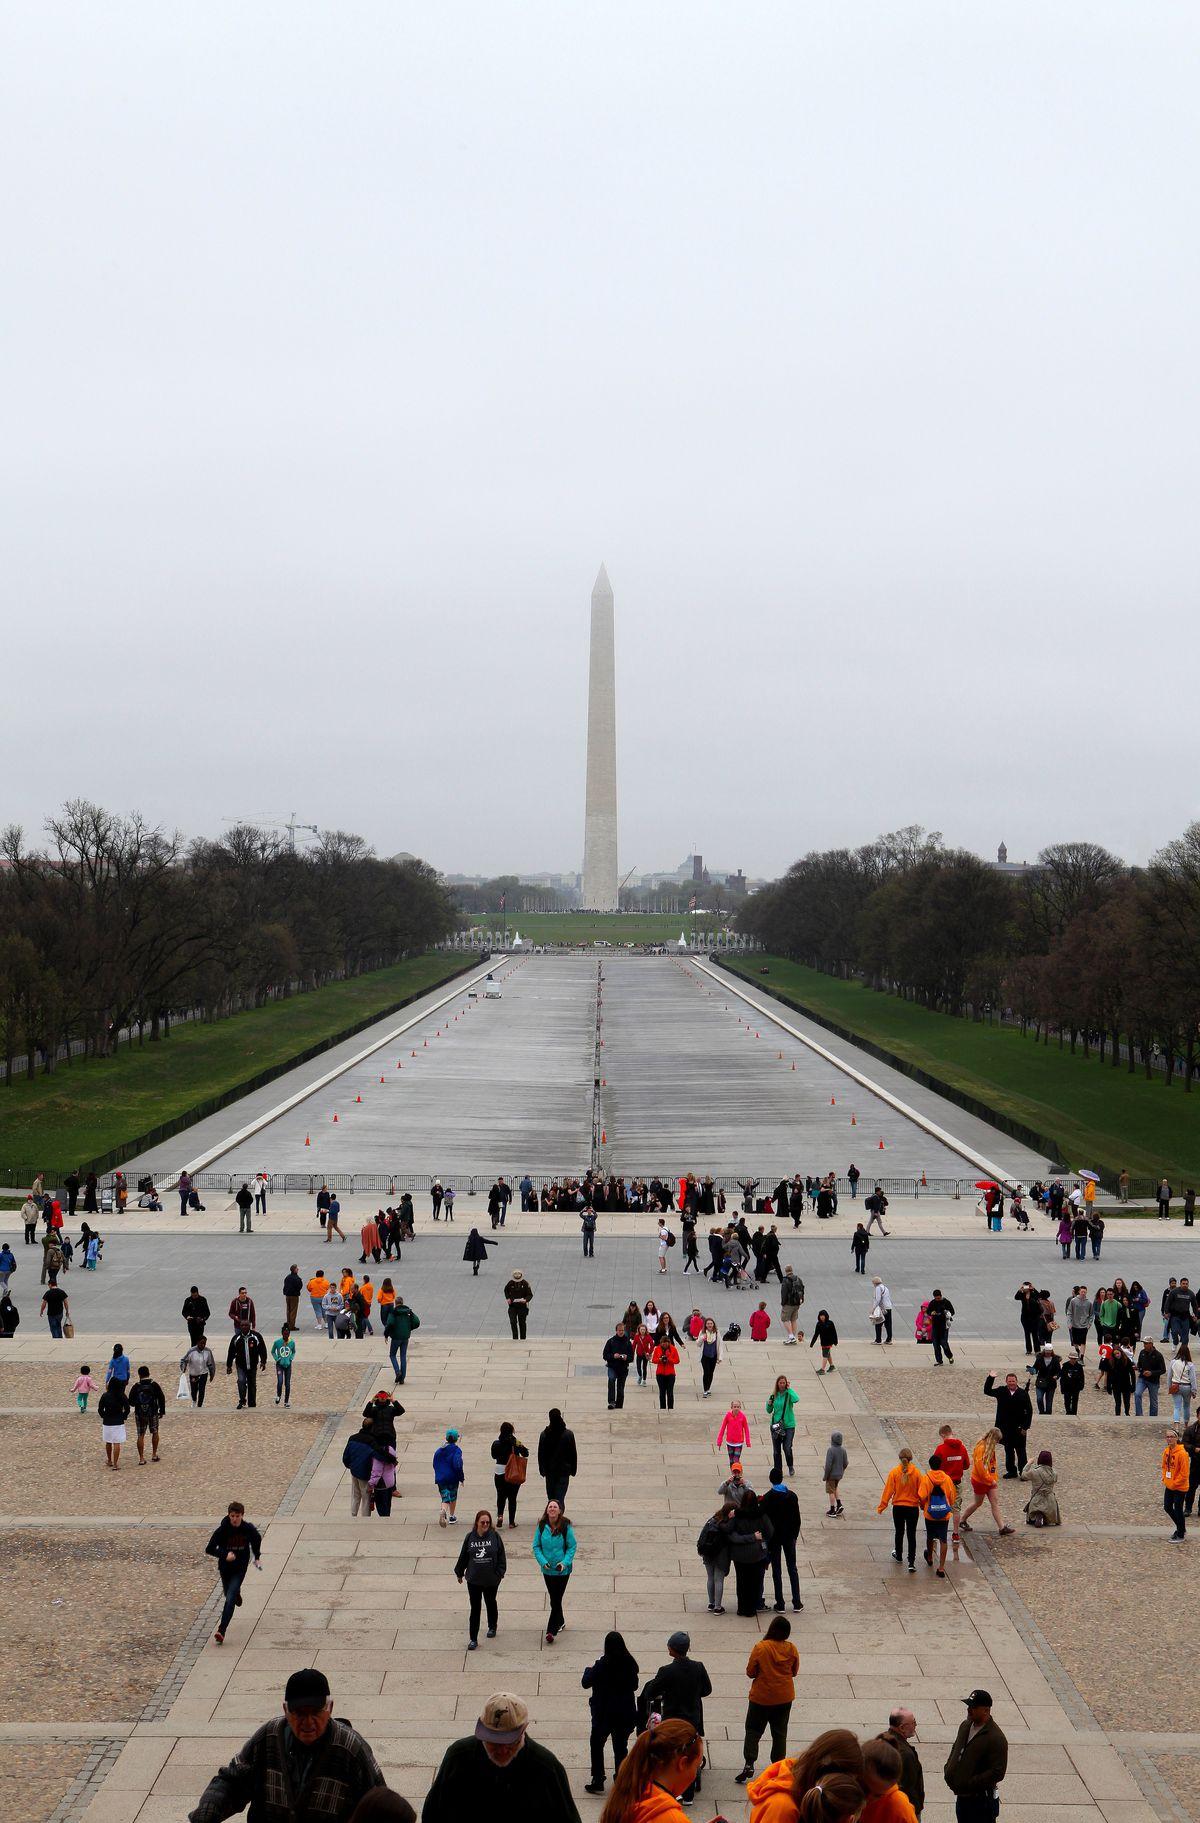 The view from the Lincoln Monument on the National Mall, Washington, DC. Raymond Boyd / Michael Ochs Archives